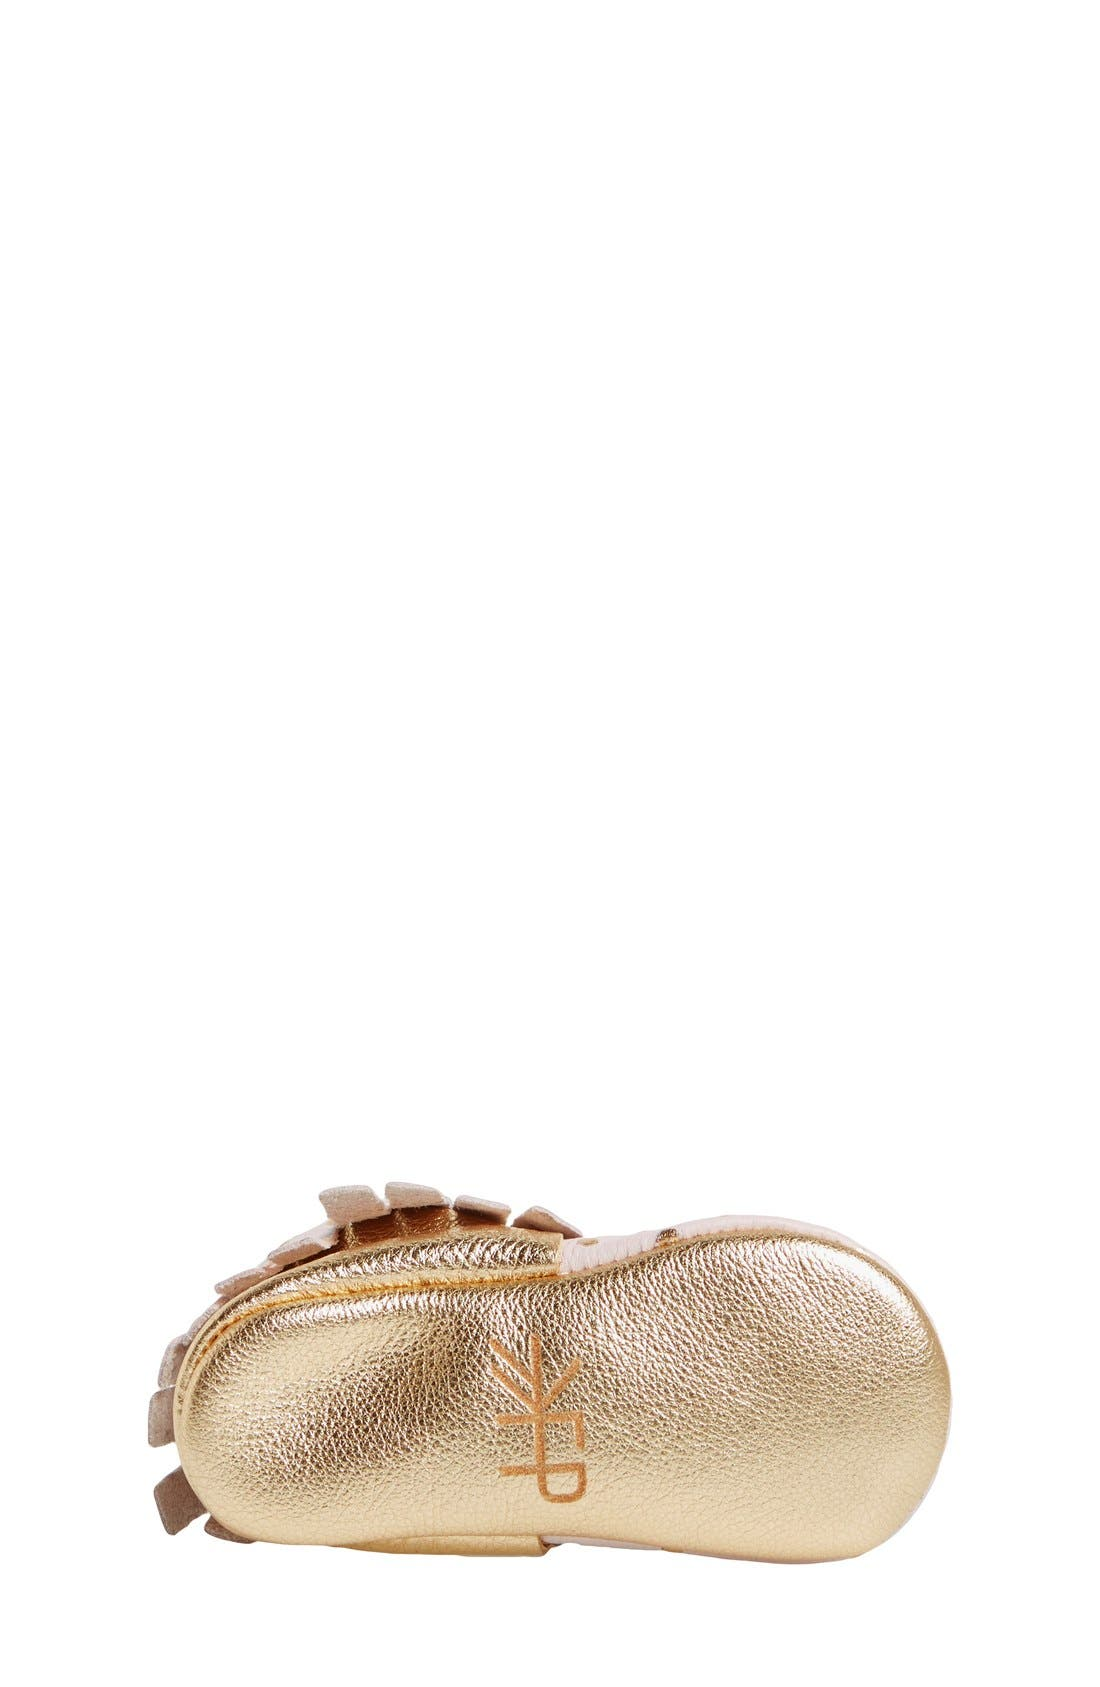 Leather Moccasin,                             Alternate thumbnail 4, color,                             Heirloom Blush And Gold